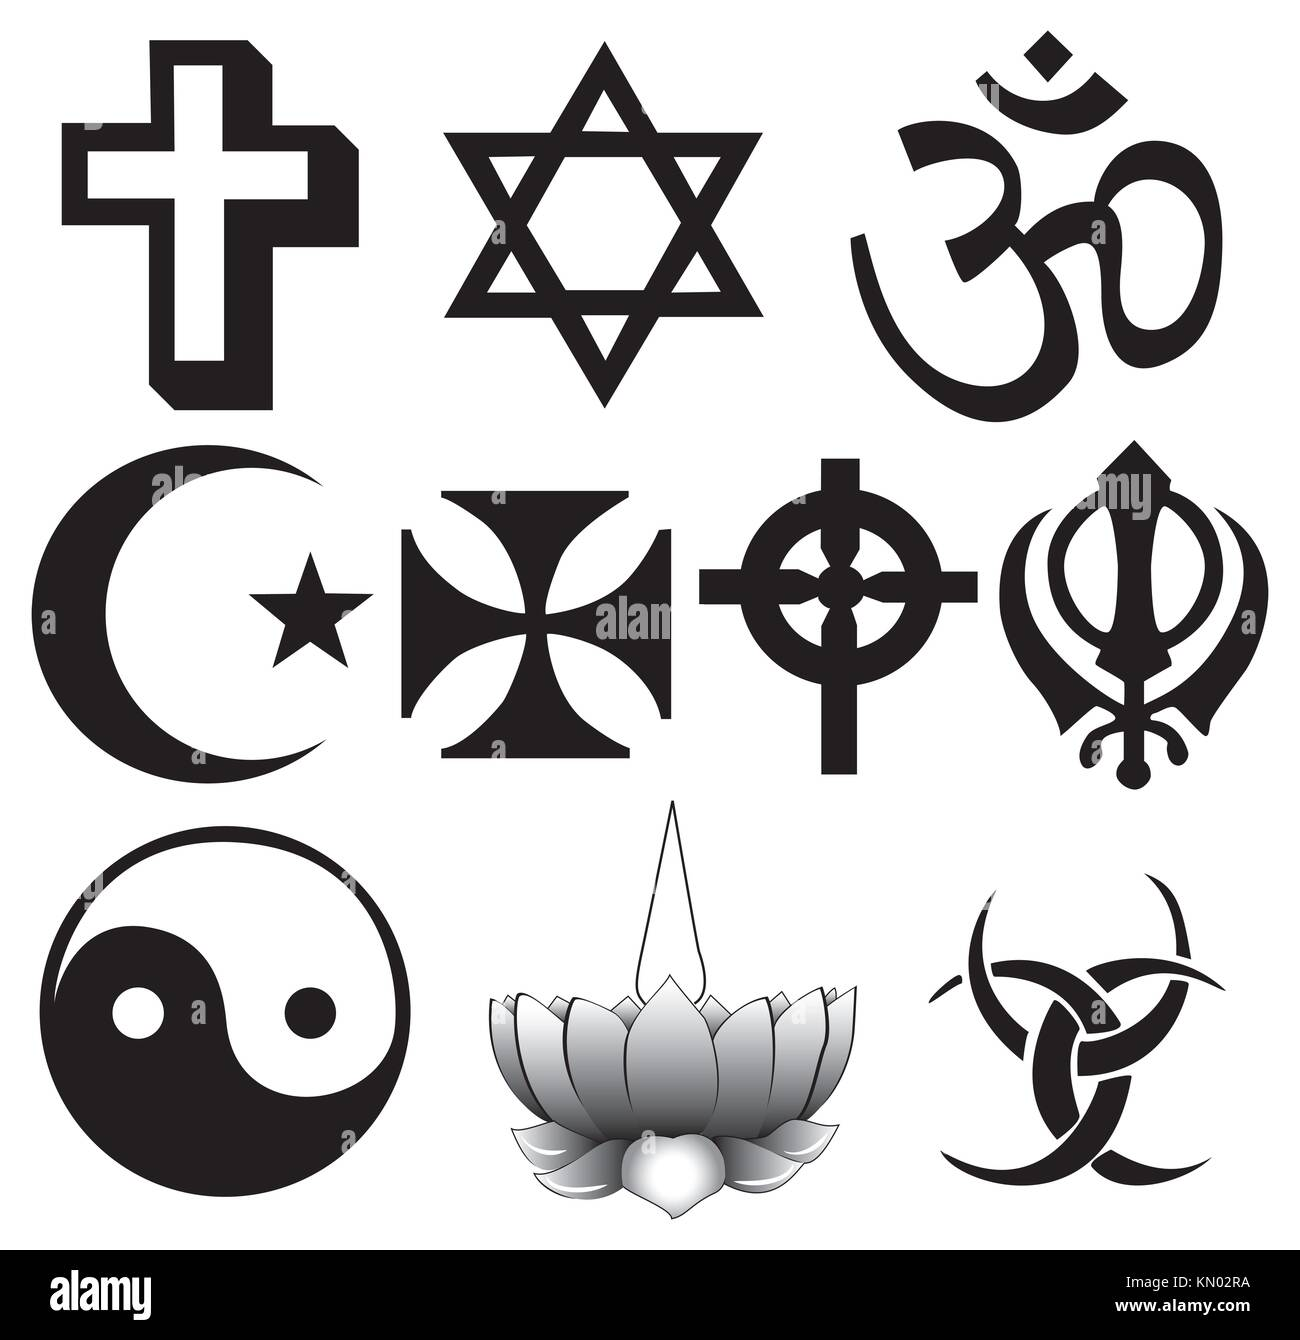 Religion symbols cut out stock images pictures alamy different religions symbols stock image buycottarizona